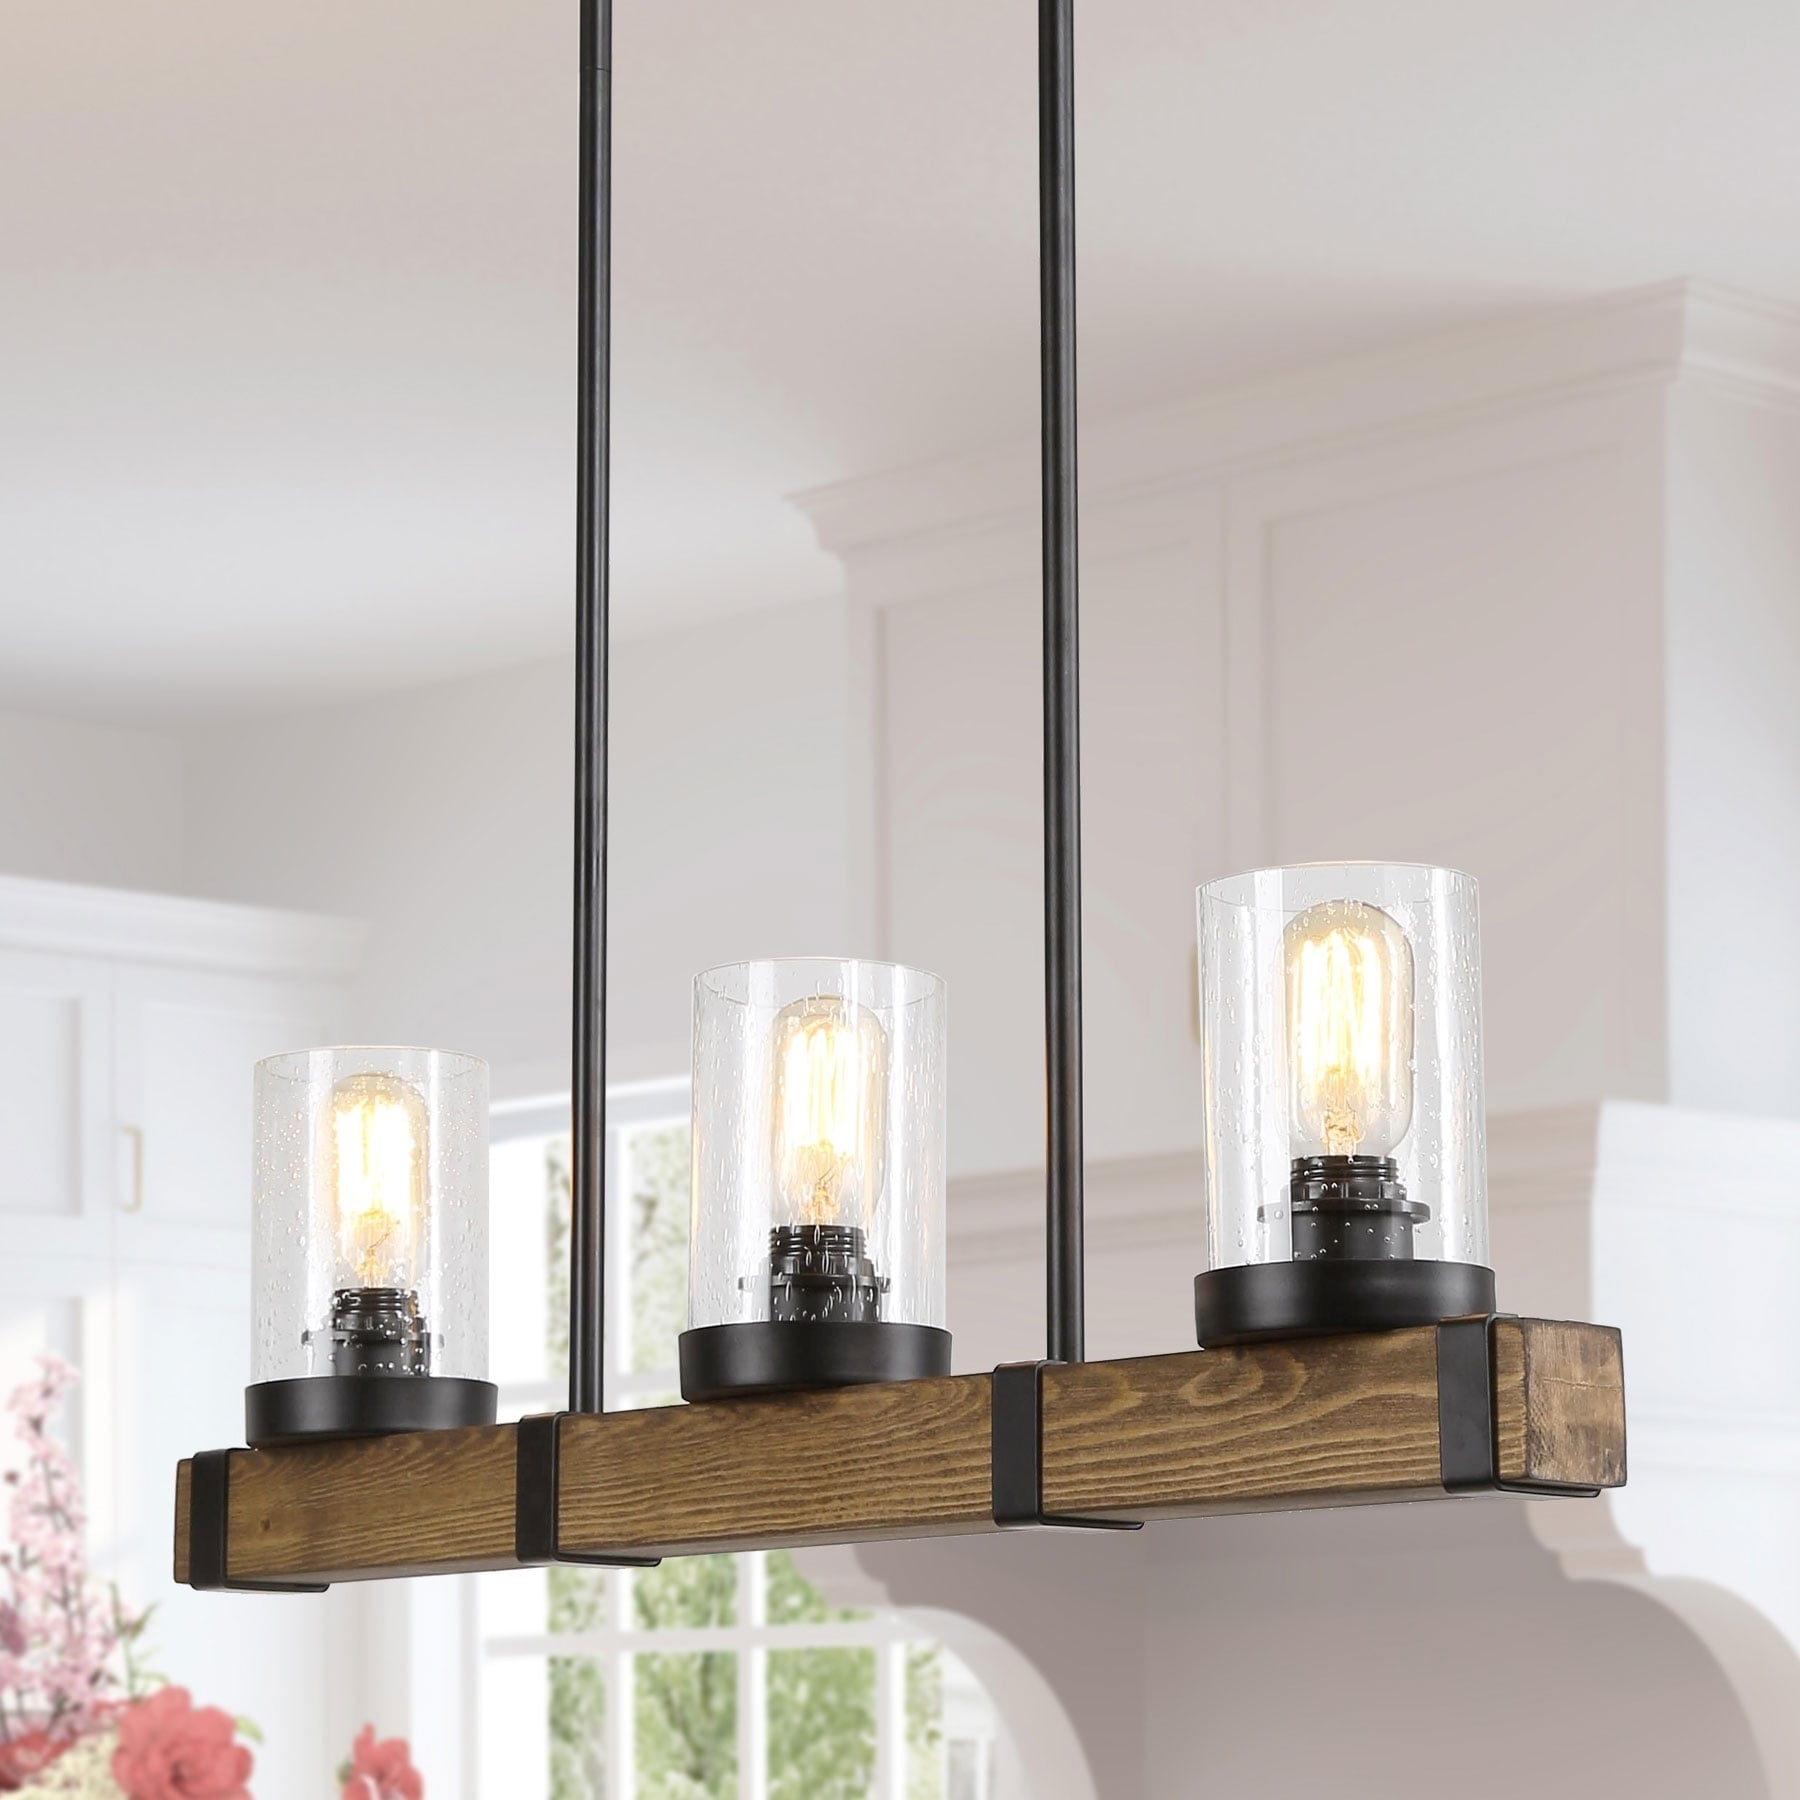 Shop The Gray Barn Heavenly Winds Modern Pendant Lighting With 3 Lights Hanging Lighting Fixture N A Overstock 29346601